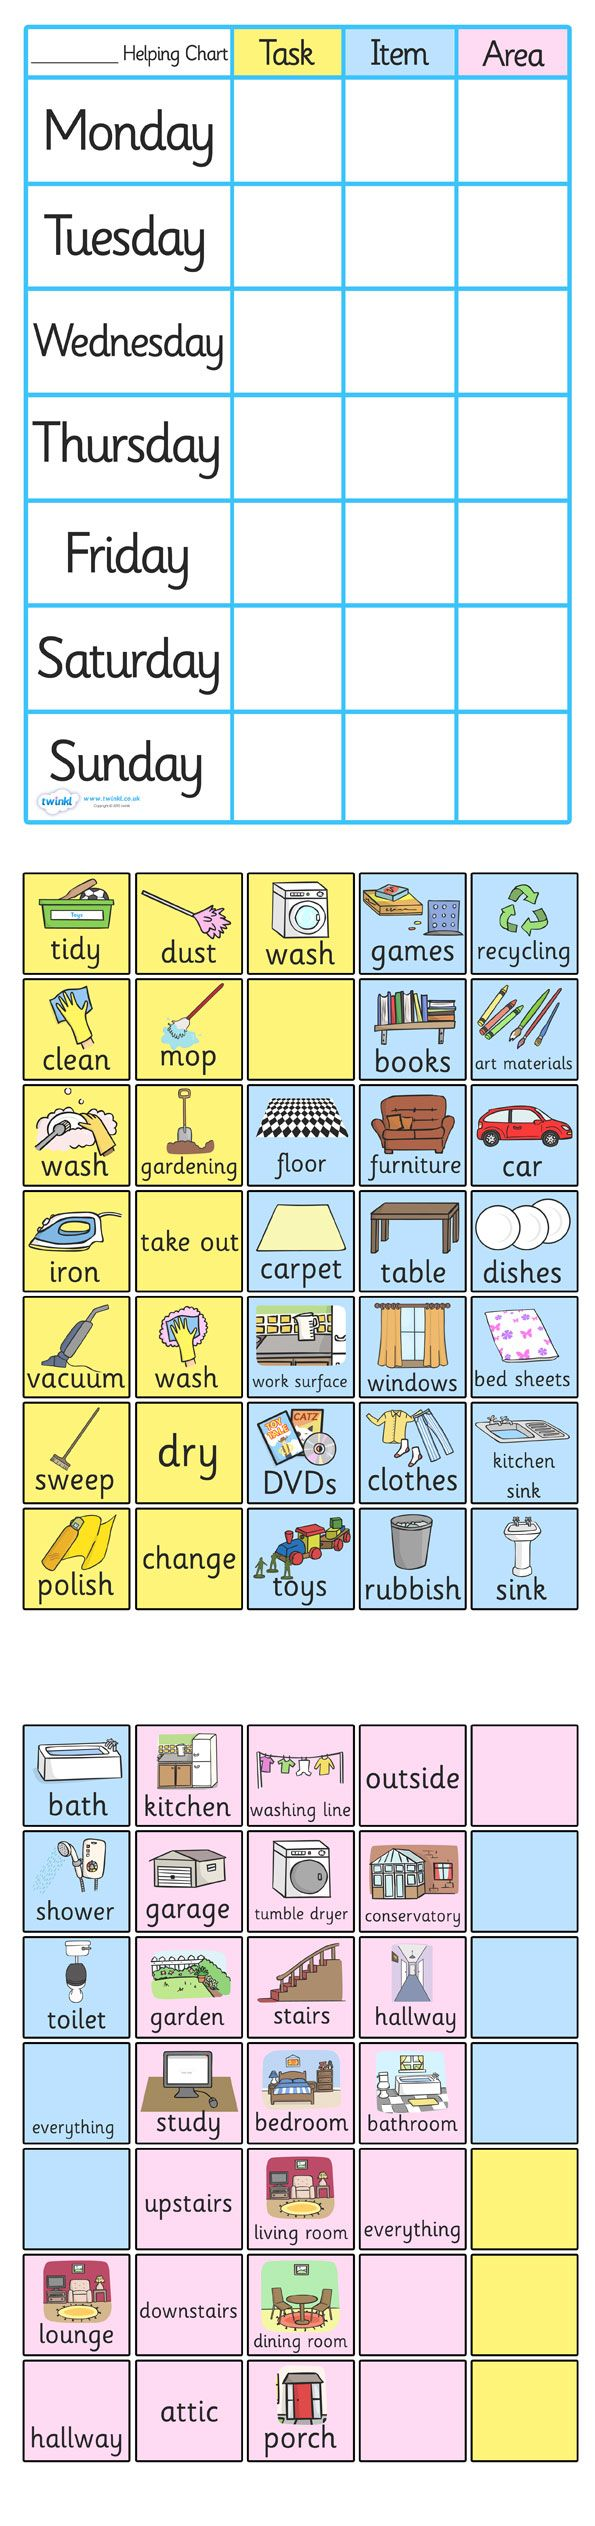 Twinkl Resources >> Chpre Chart For Home >> Thousands of printable primary teaching resources for EYFS, KS1, KS2 and beyond! chore chart, home use, home school, home, help, item, area, tidy, wash, bedroom, bathroom, cleaning                                                                                                                                                     More